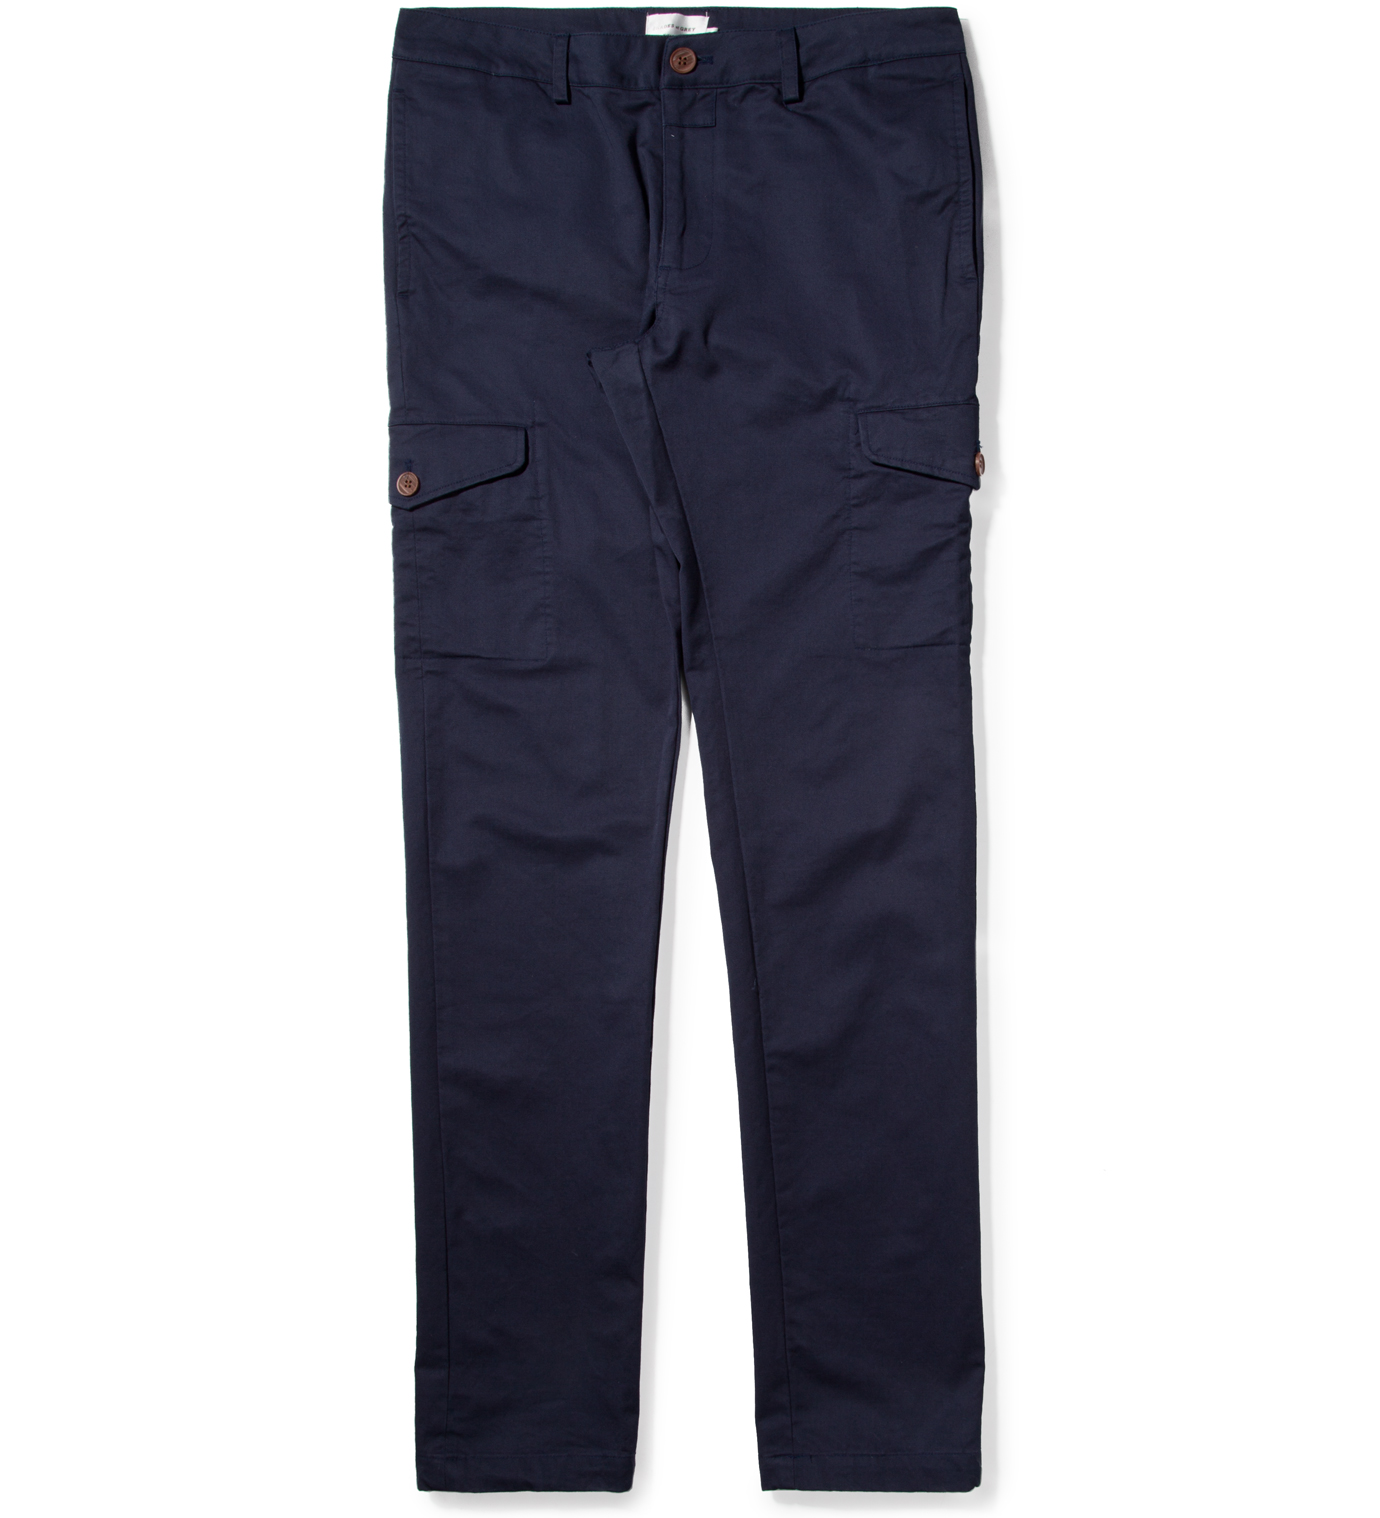 Shades of Grey by Micah Cohen Navy Cargo Pant